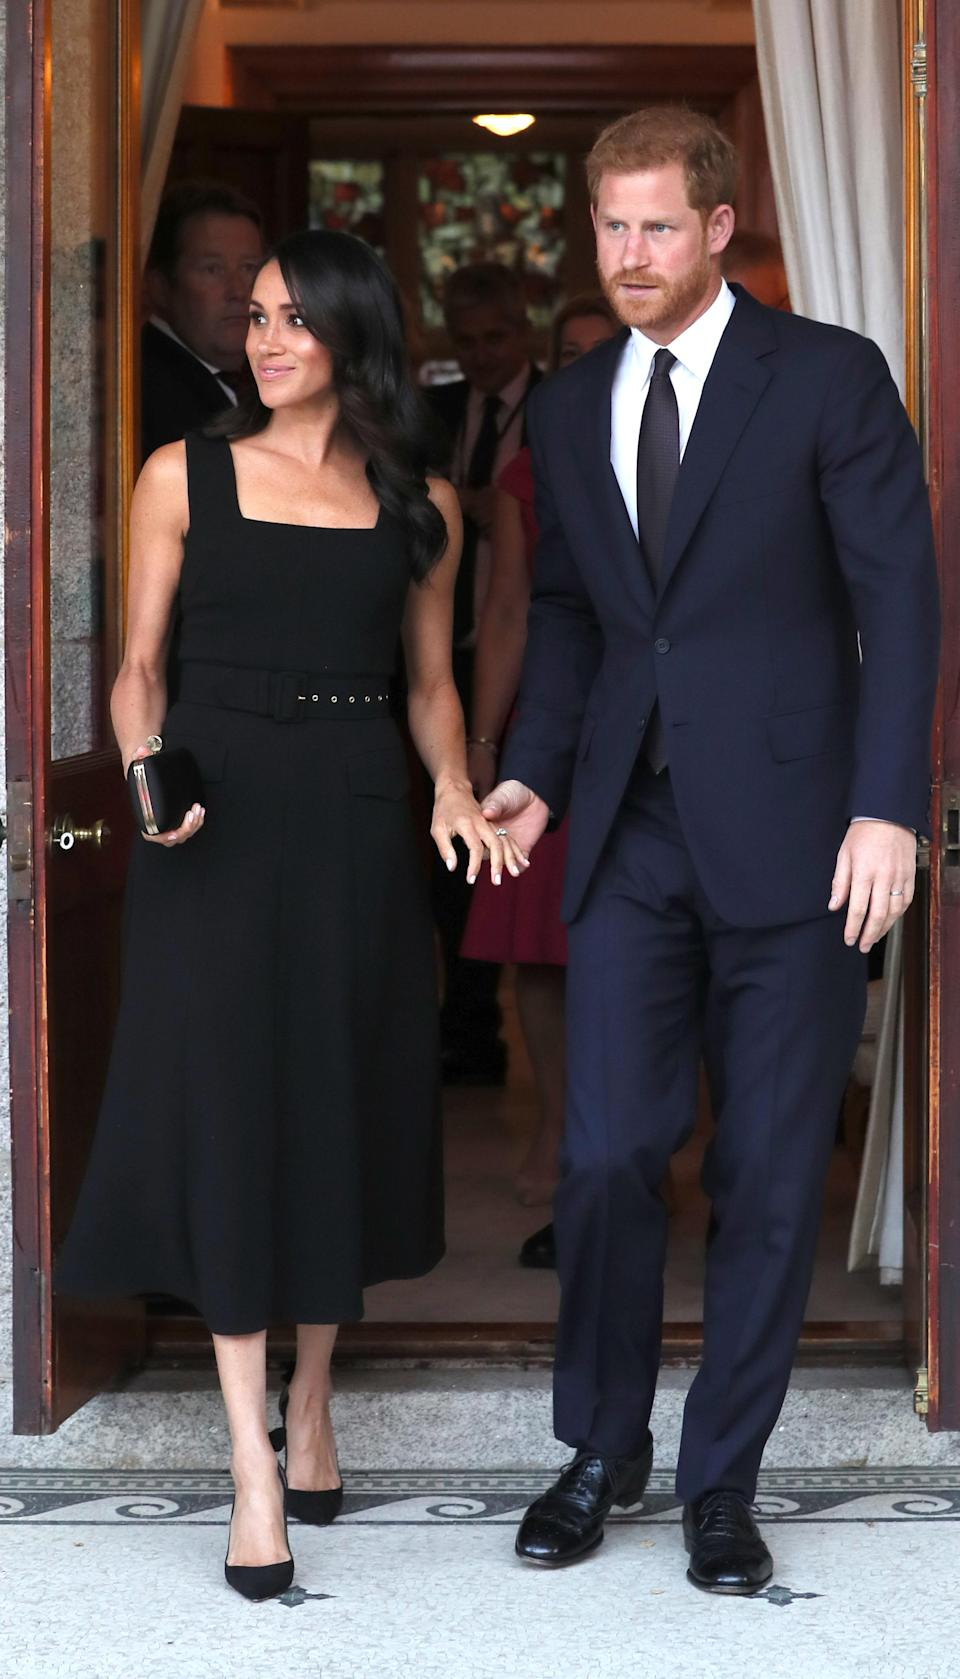 Outfit 3: The Duchess of Sussex rose above any previous controversy in an Emilia Wickstead dress [Photo: PA]